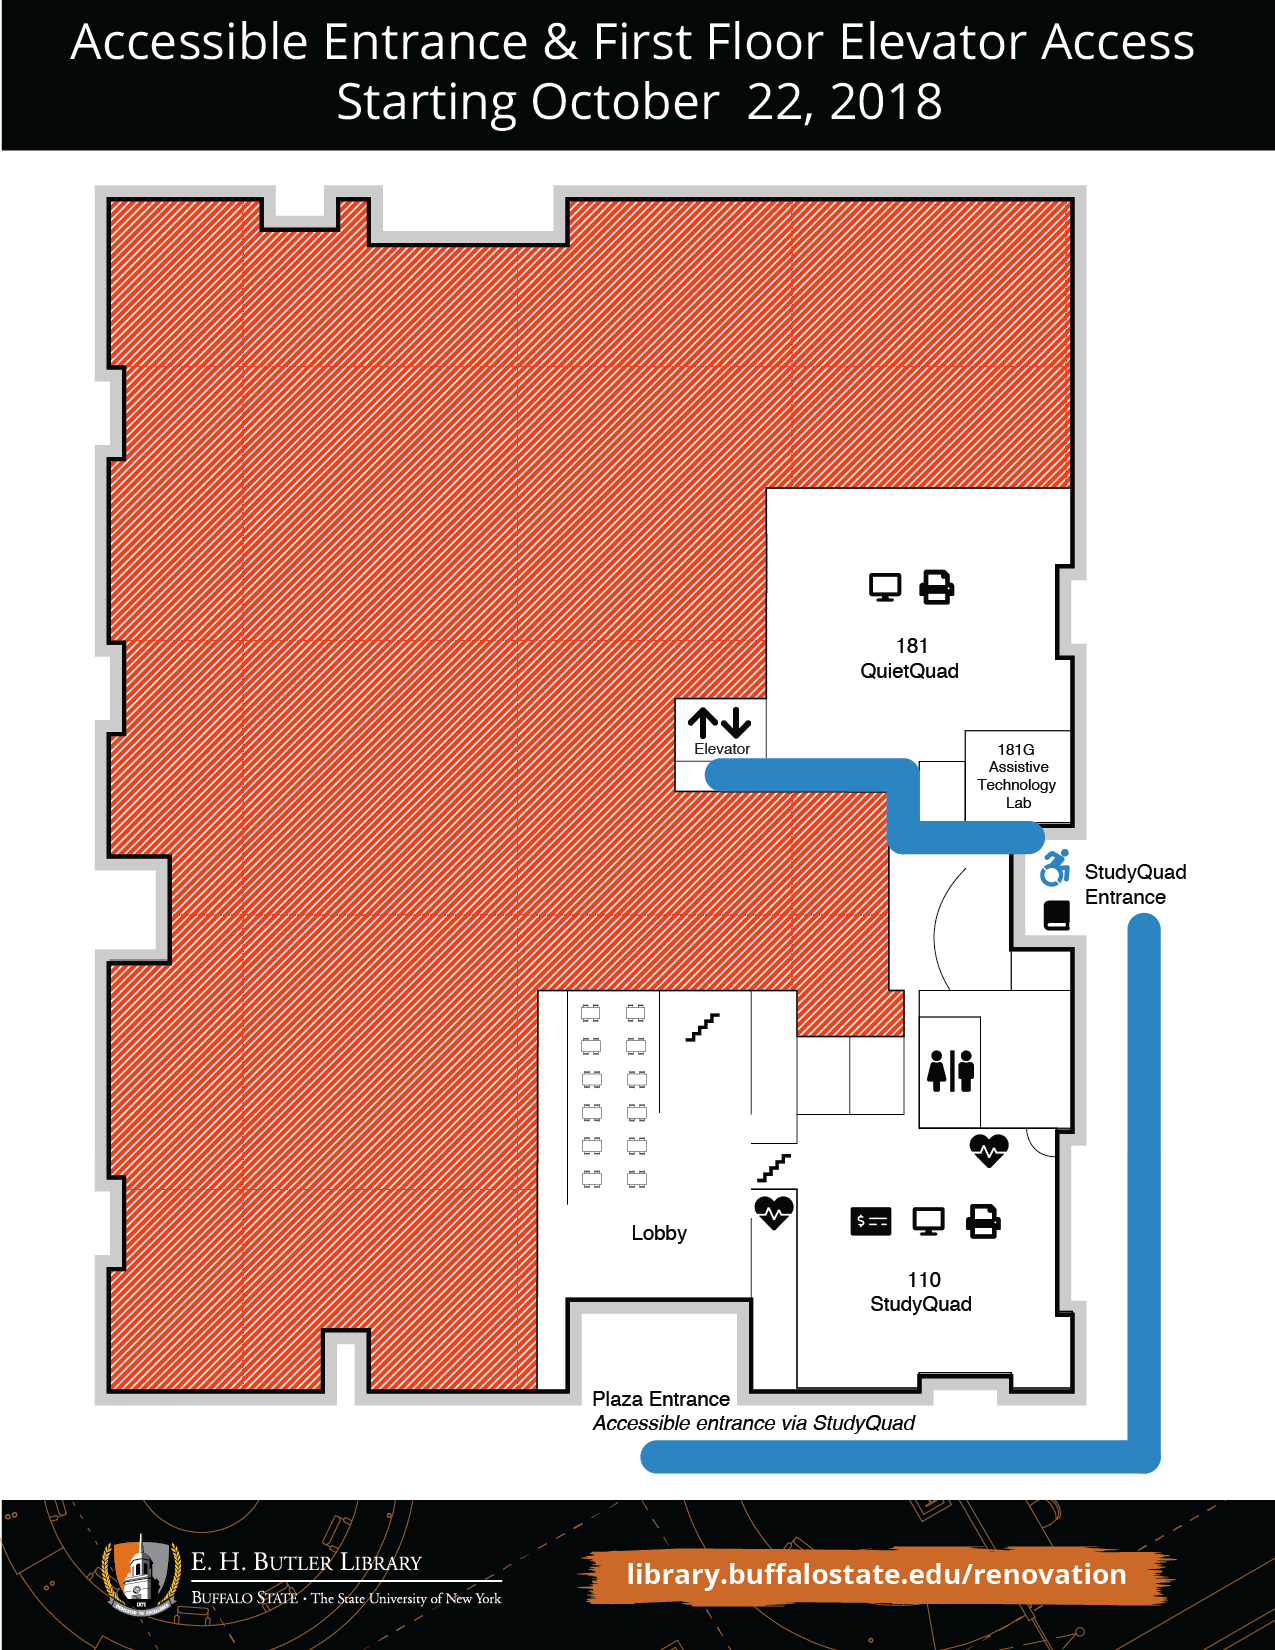 Accessible entrance and first floor elevator access map, starting October 22, 2018